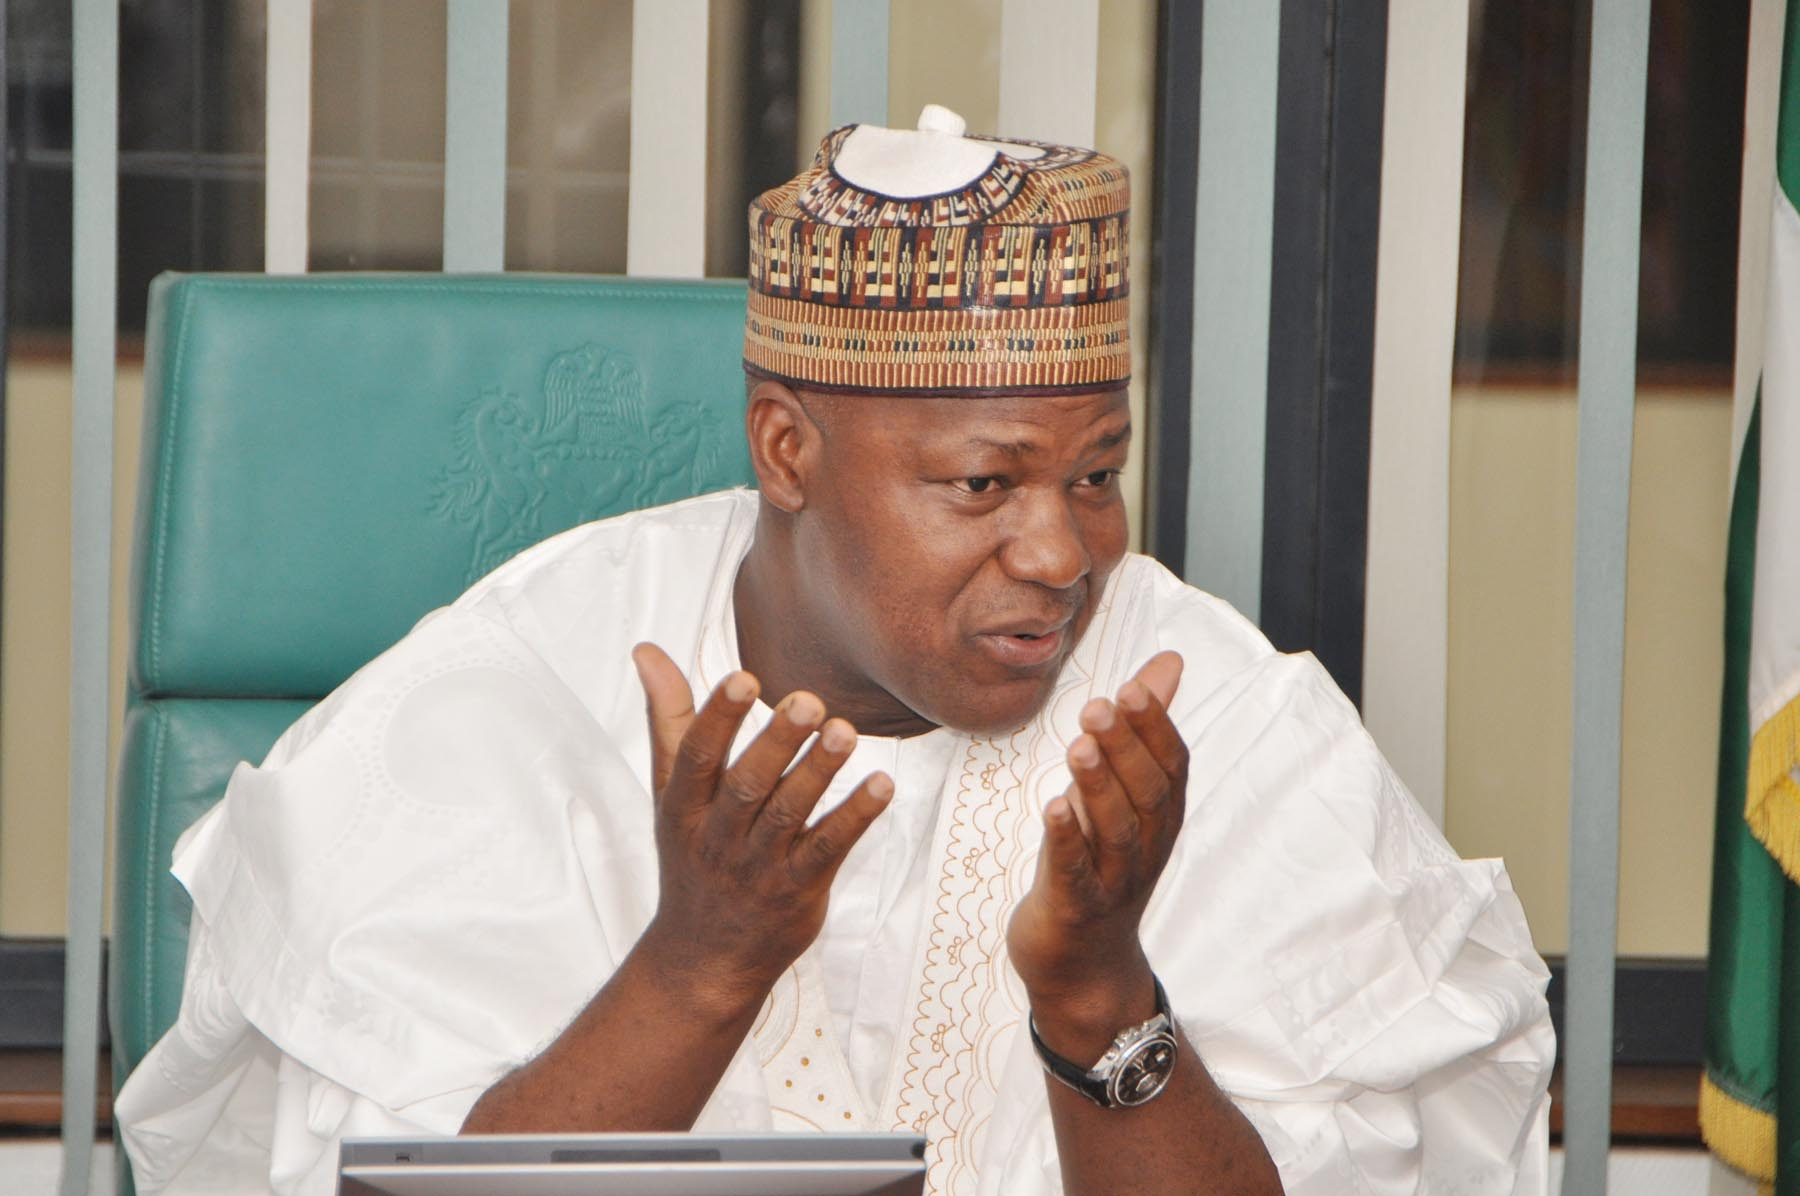 Dogara Wants Probe Into Calabar Football Fans Deaths